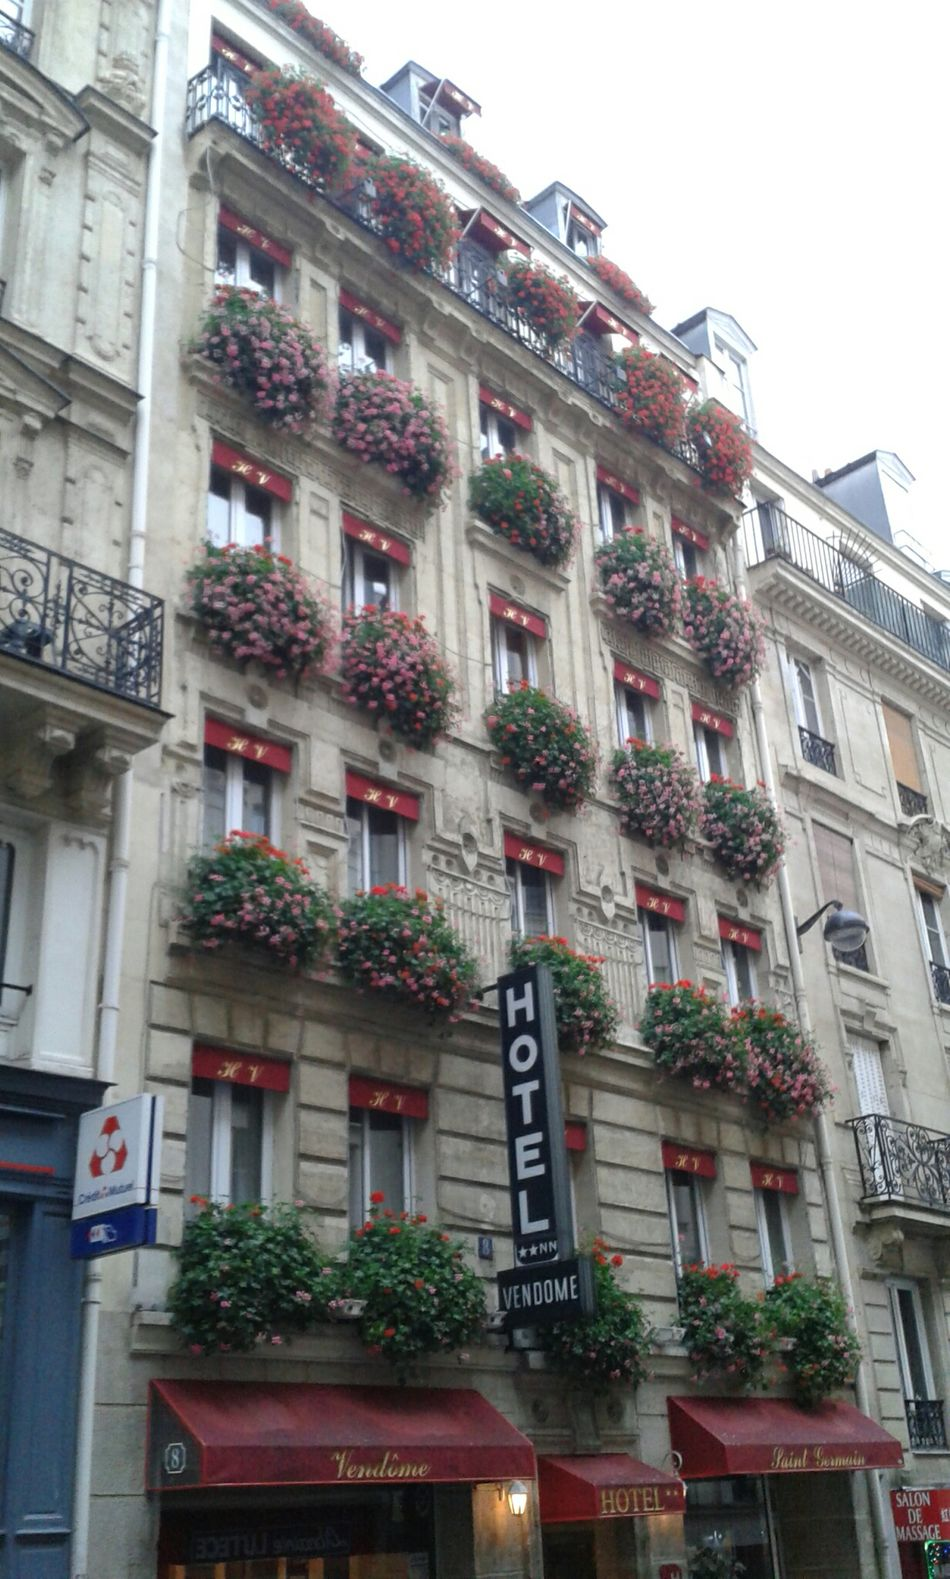 As January floridas de Paris!!! Flores Flowers Windows Windows With Flowers Hello World France Enjoying The Sights Flowerlovers